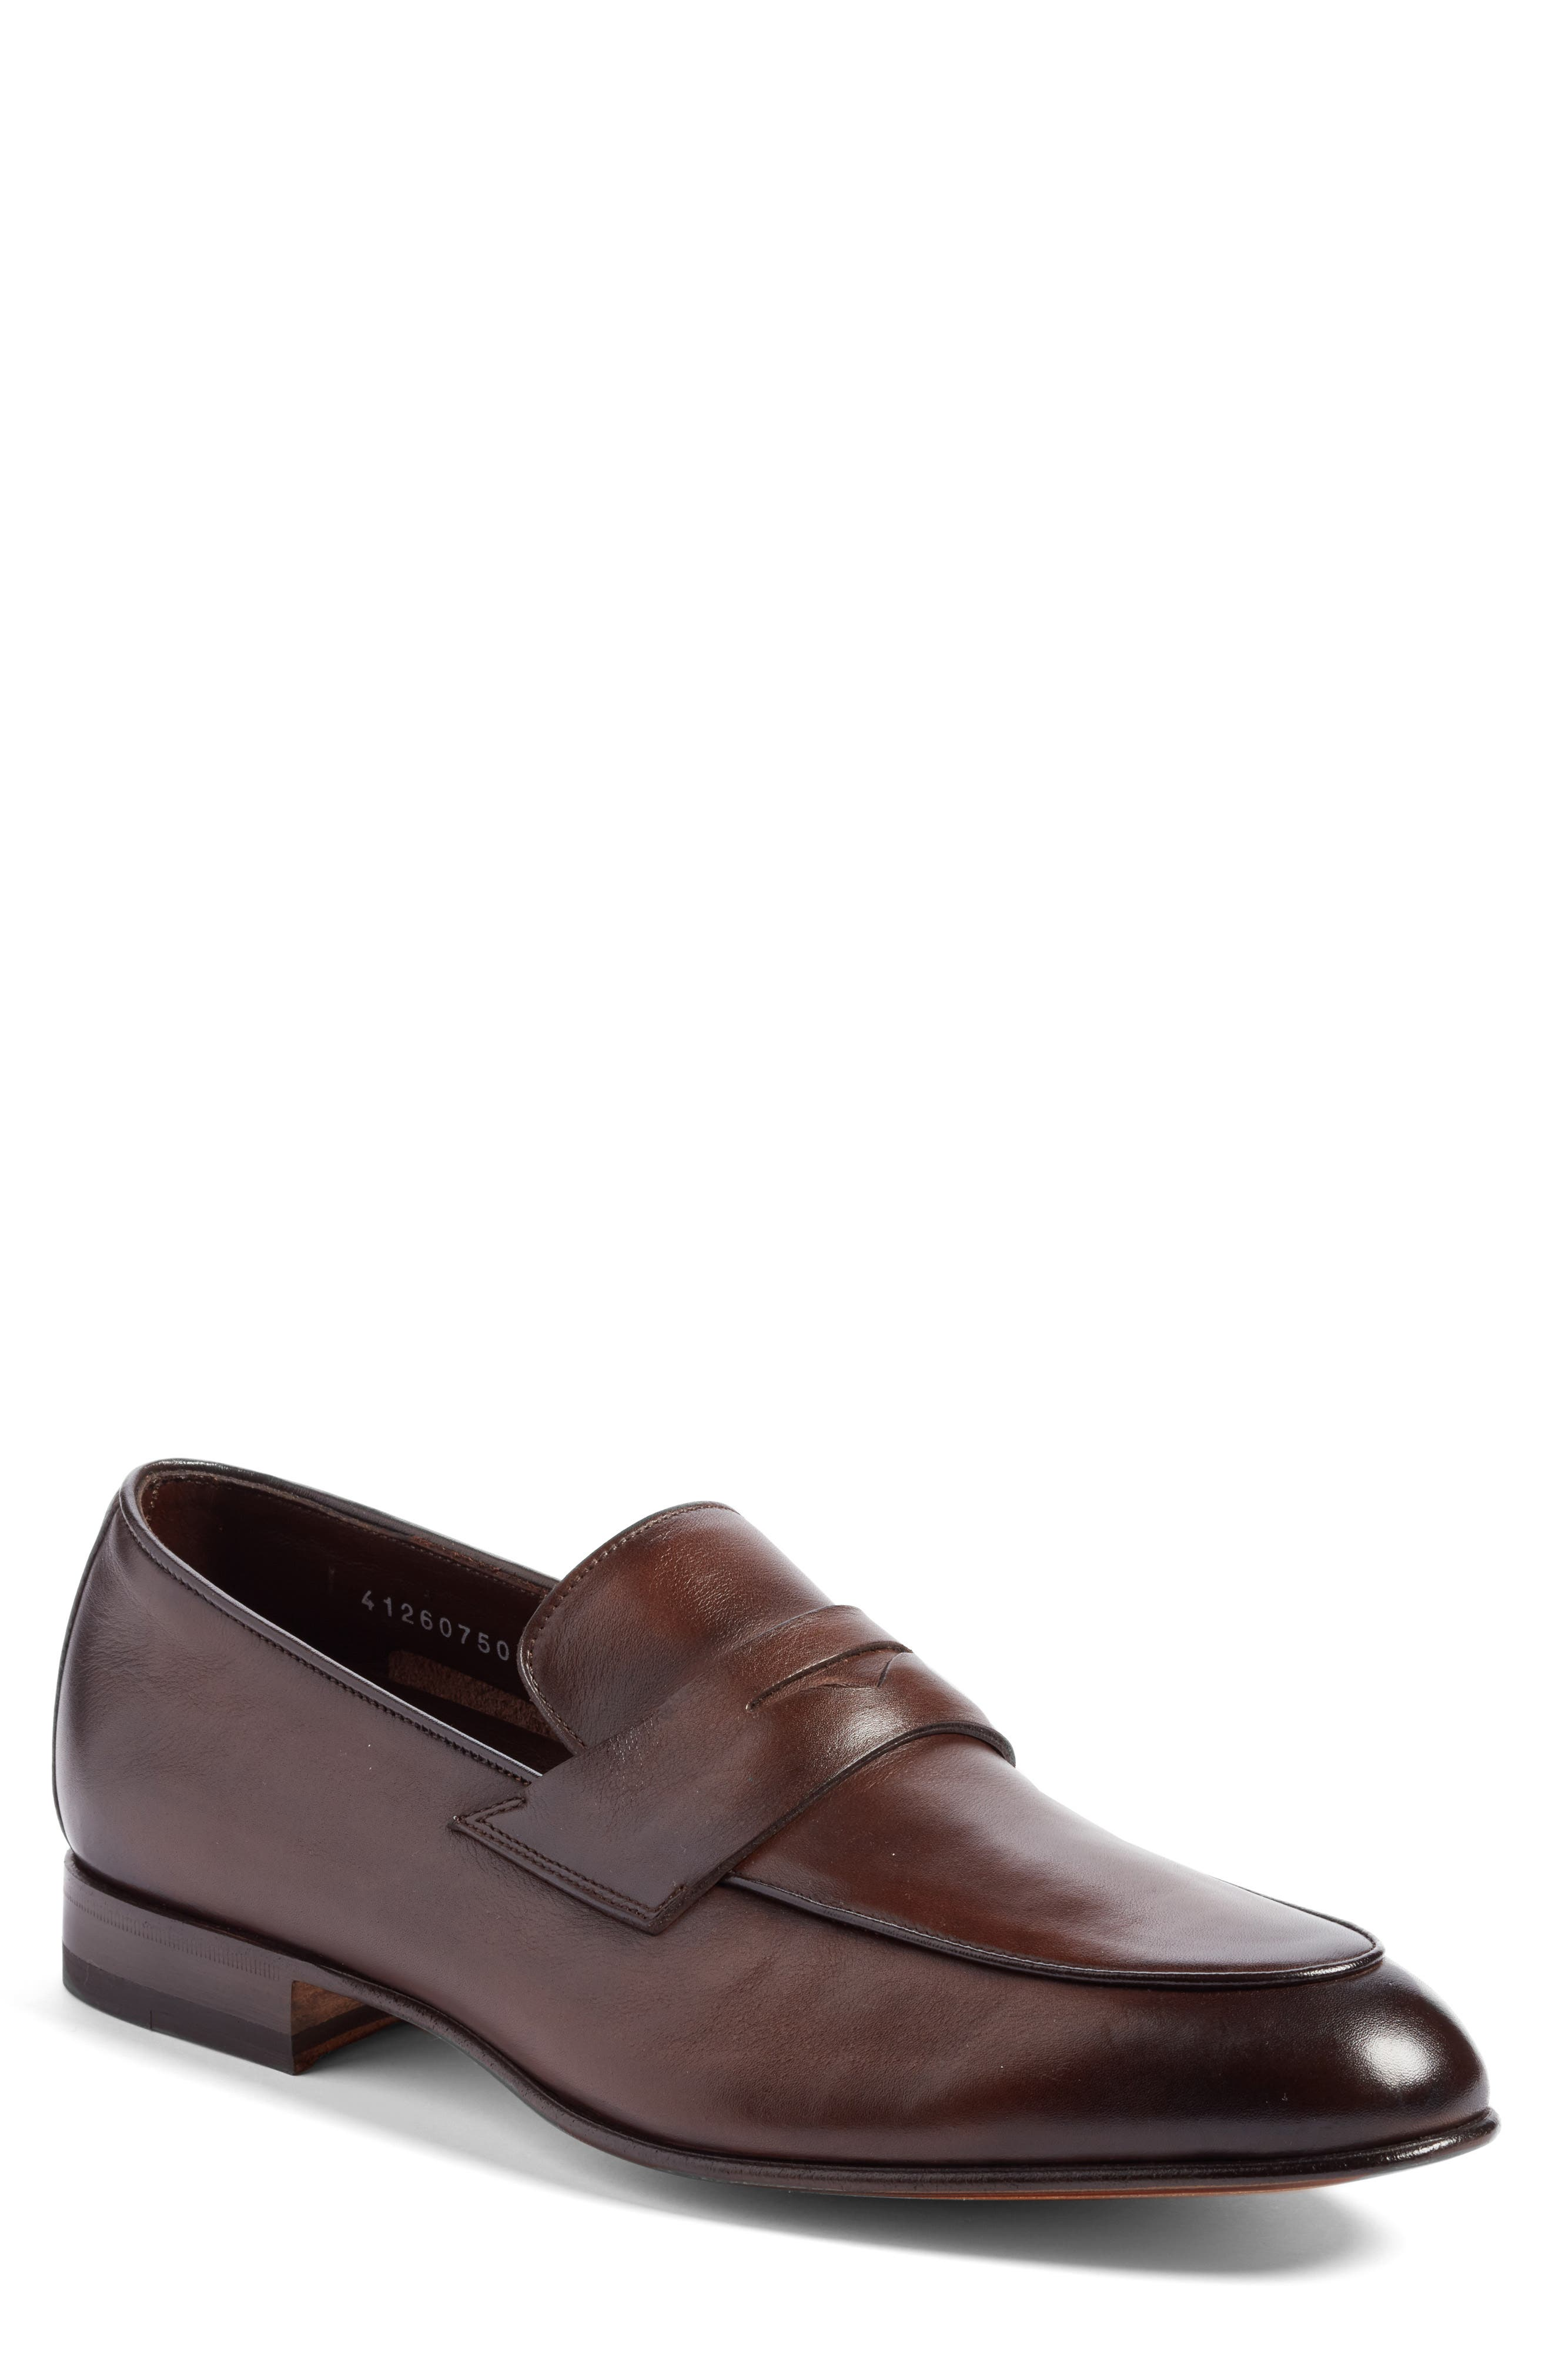 Fontaine Penny Loafer,                         Main,                         color, 209